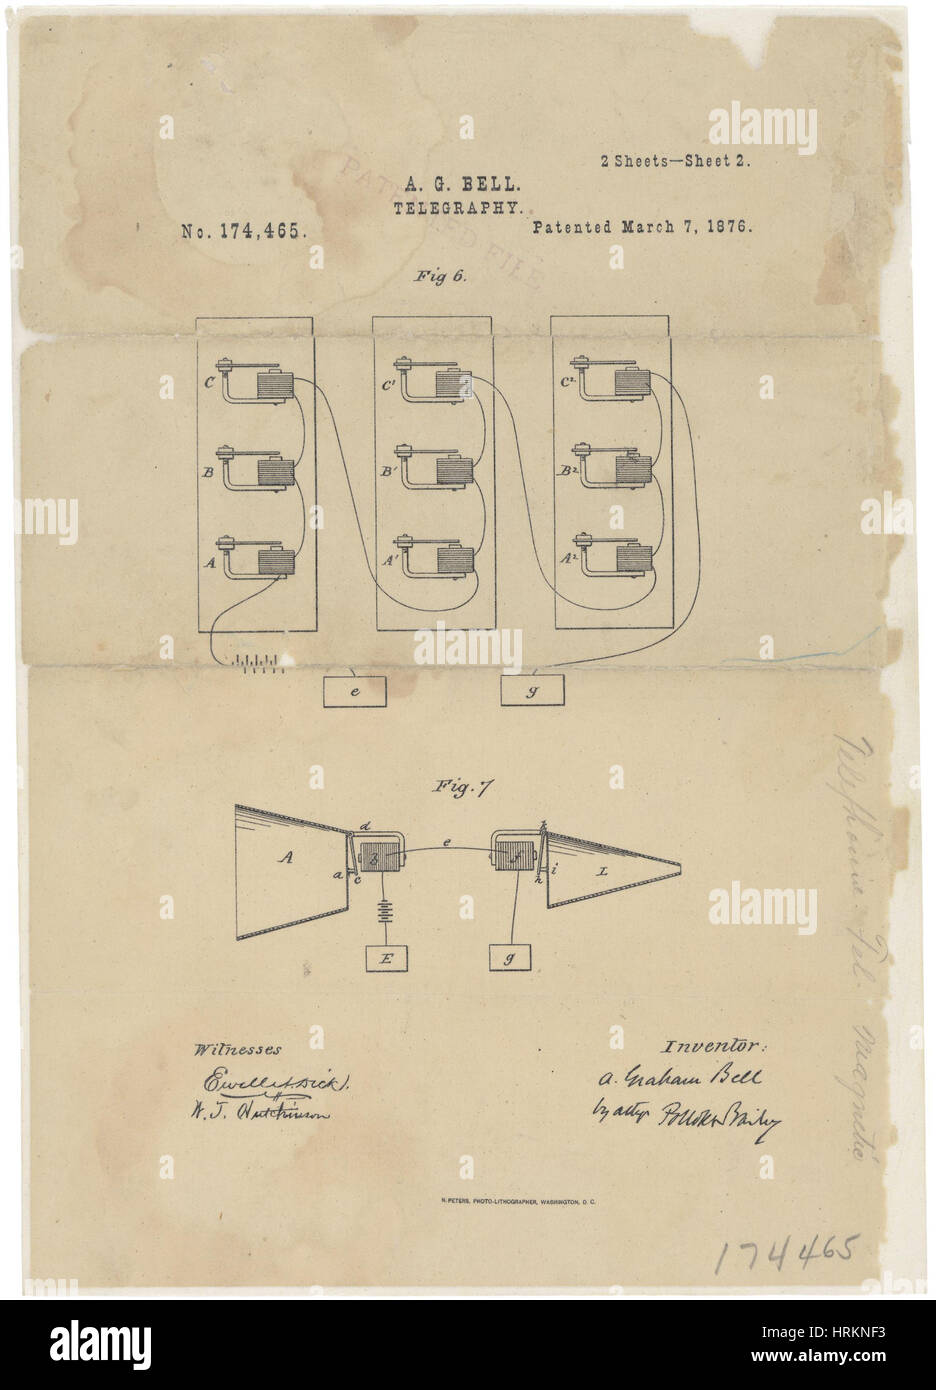 Invention Telephone Stock Photos Images Schematic Bells Patent 1876 Image